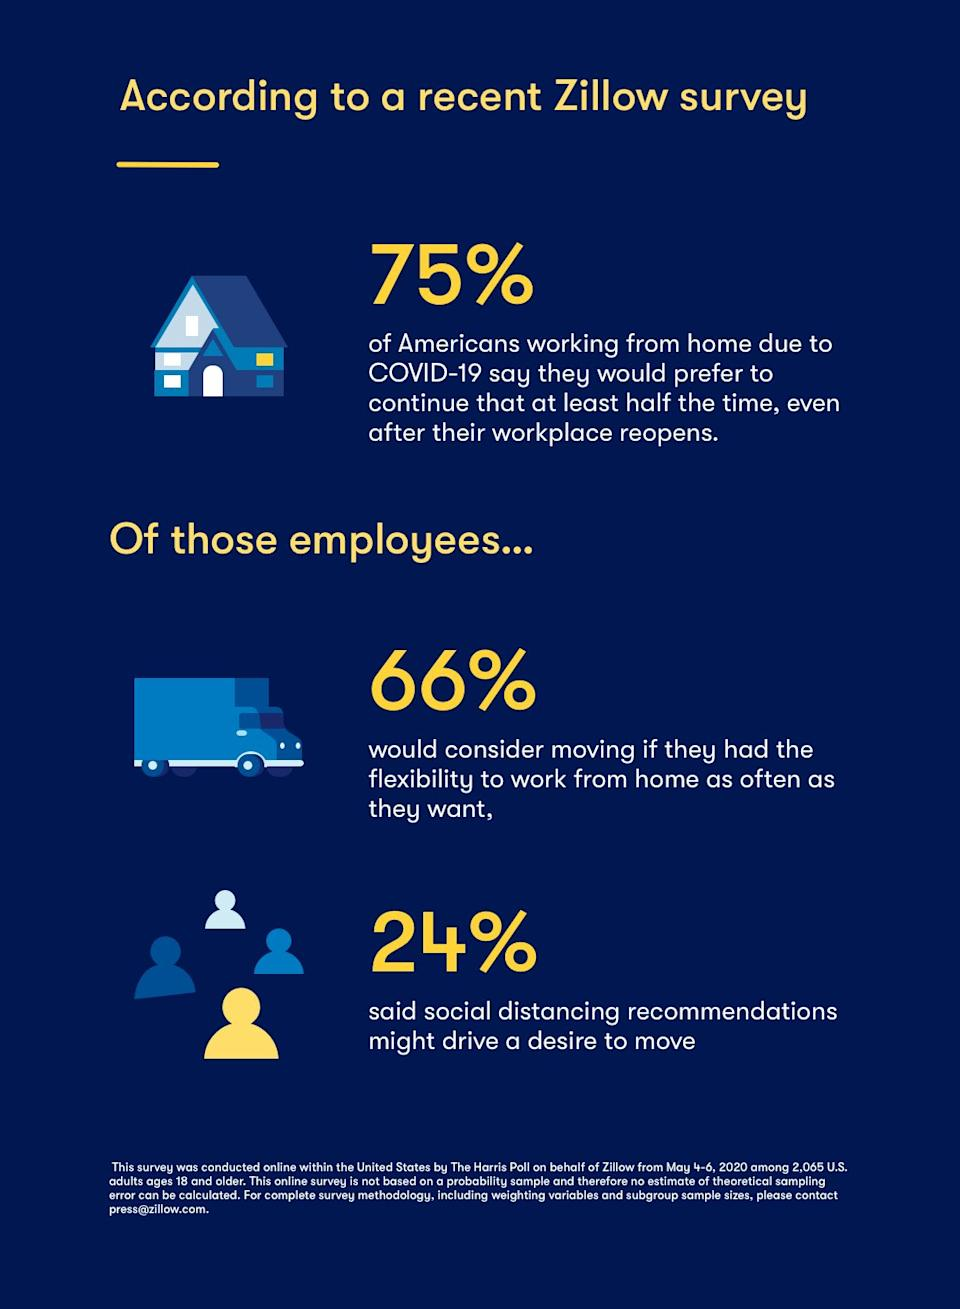 Zillow survey says 75% of people working at home for COVID would like to keep doing so - The Basis Point